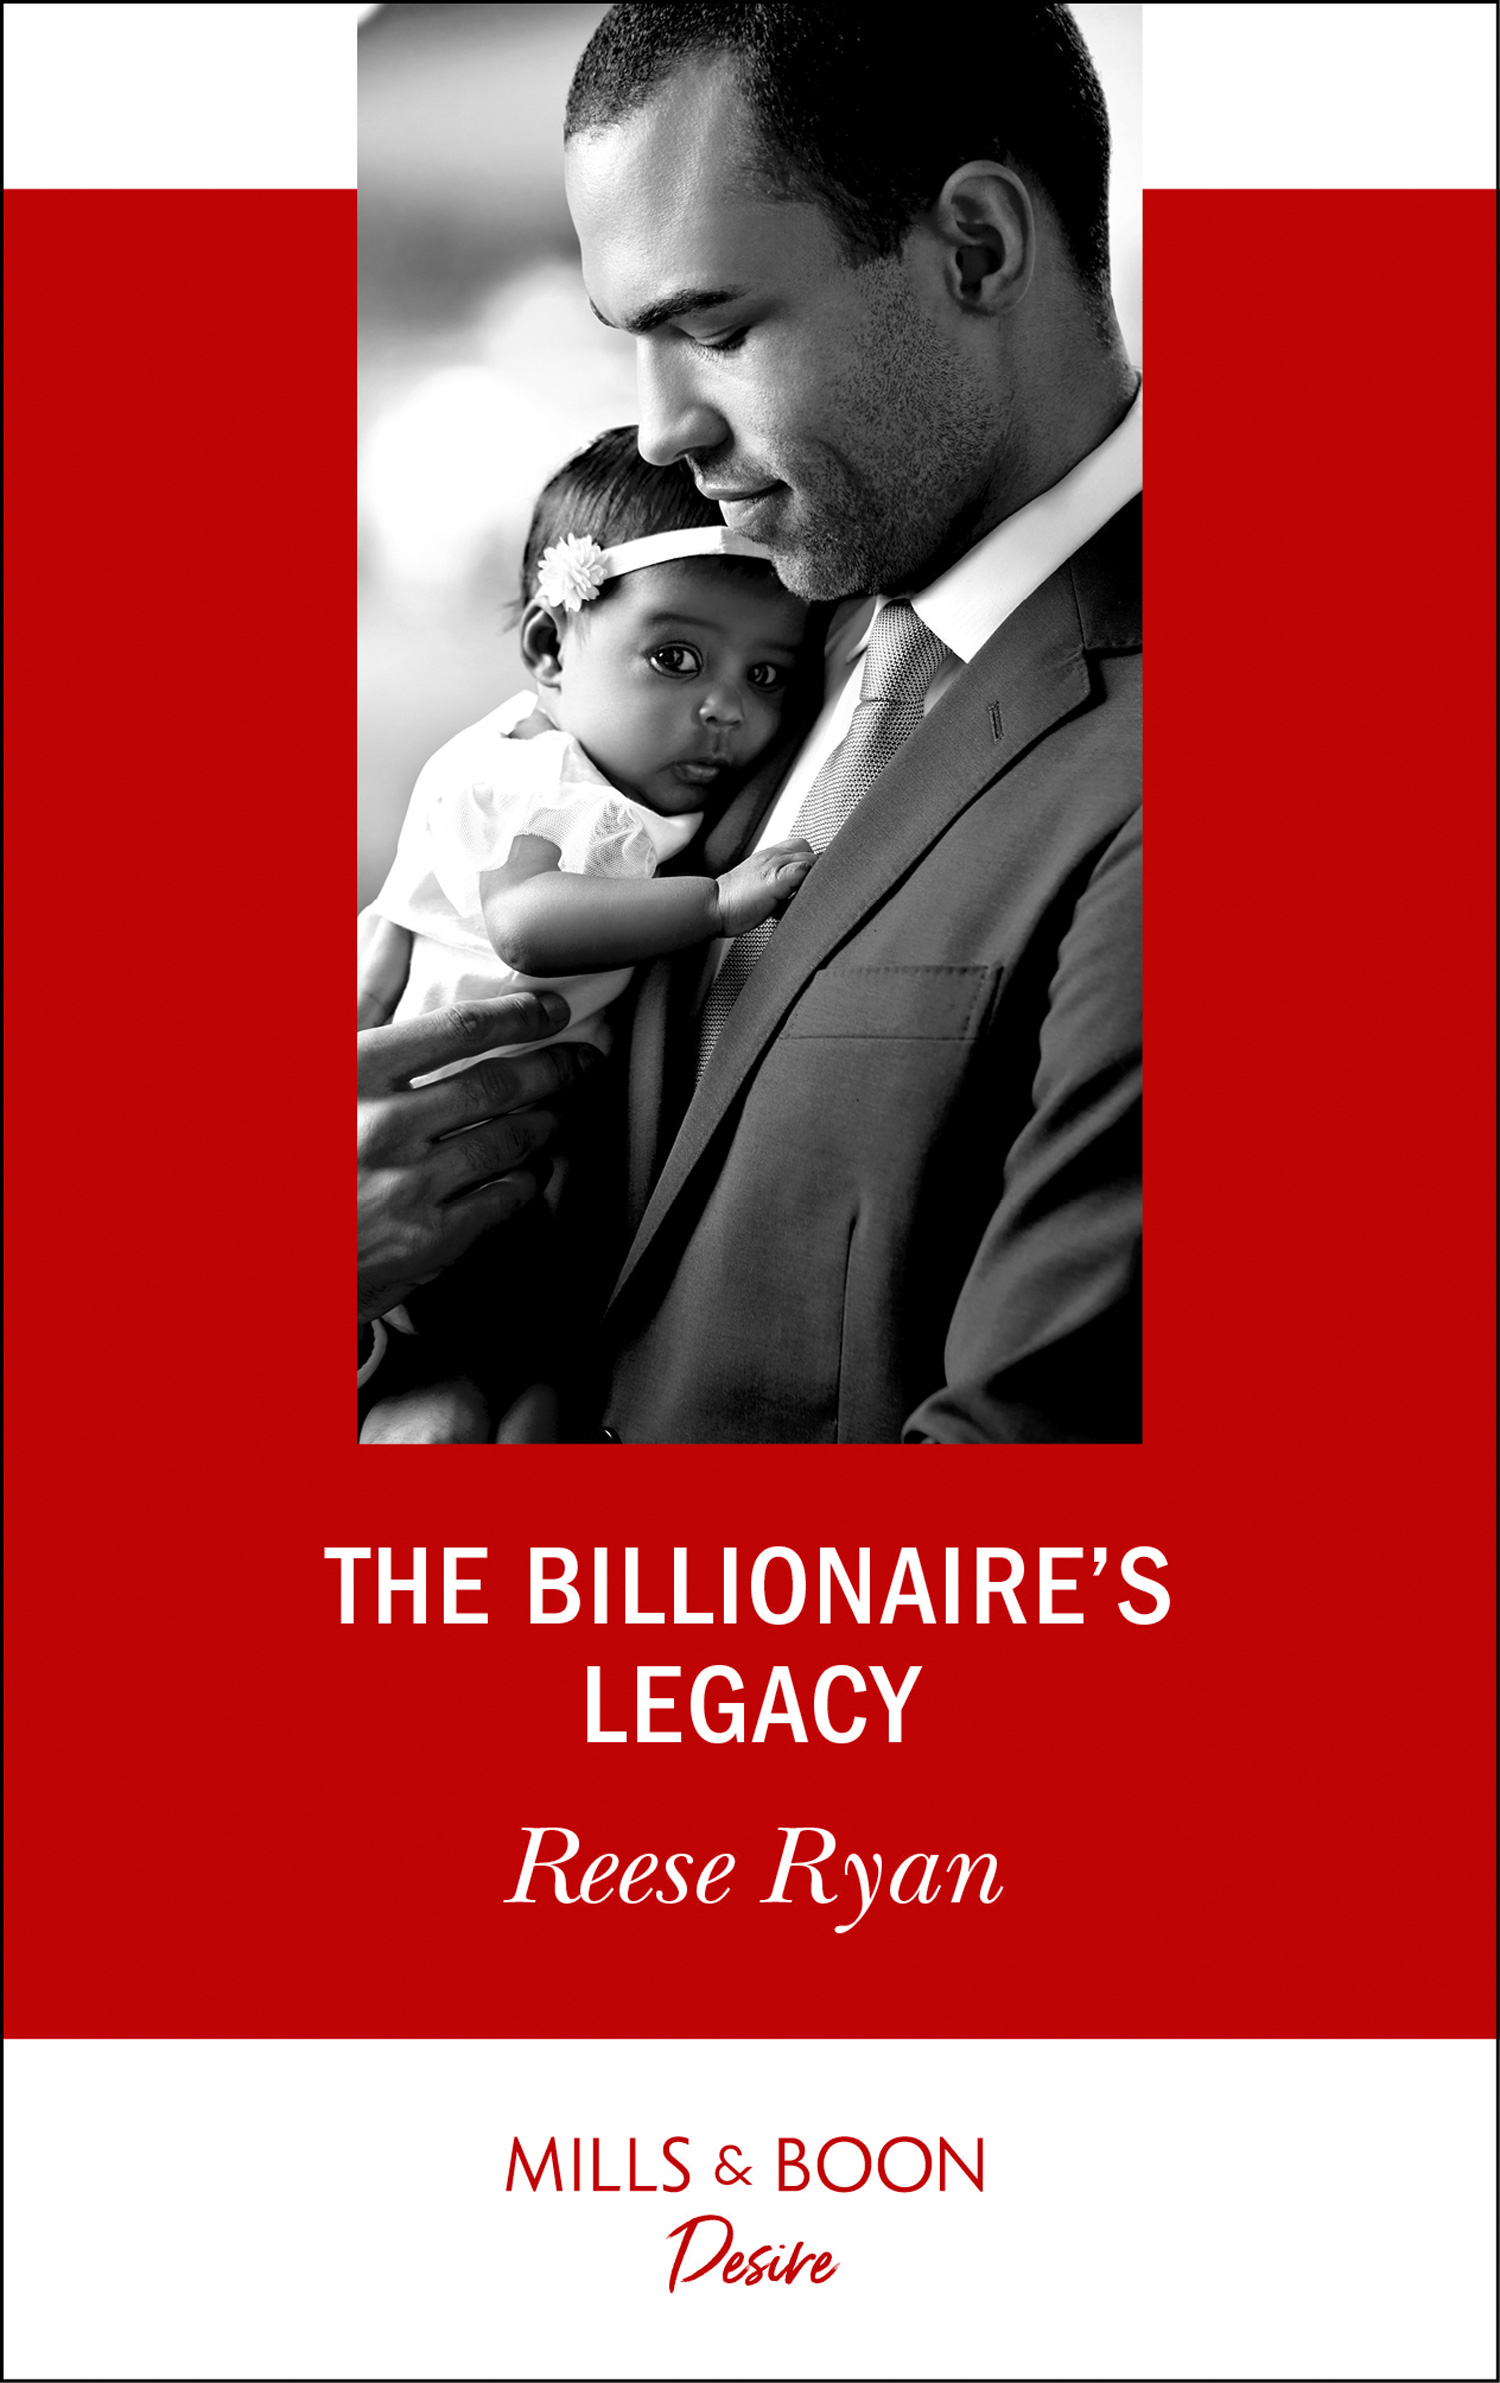 The Billionaire's Legacy